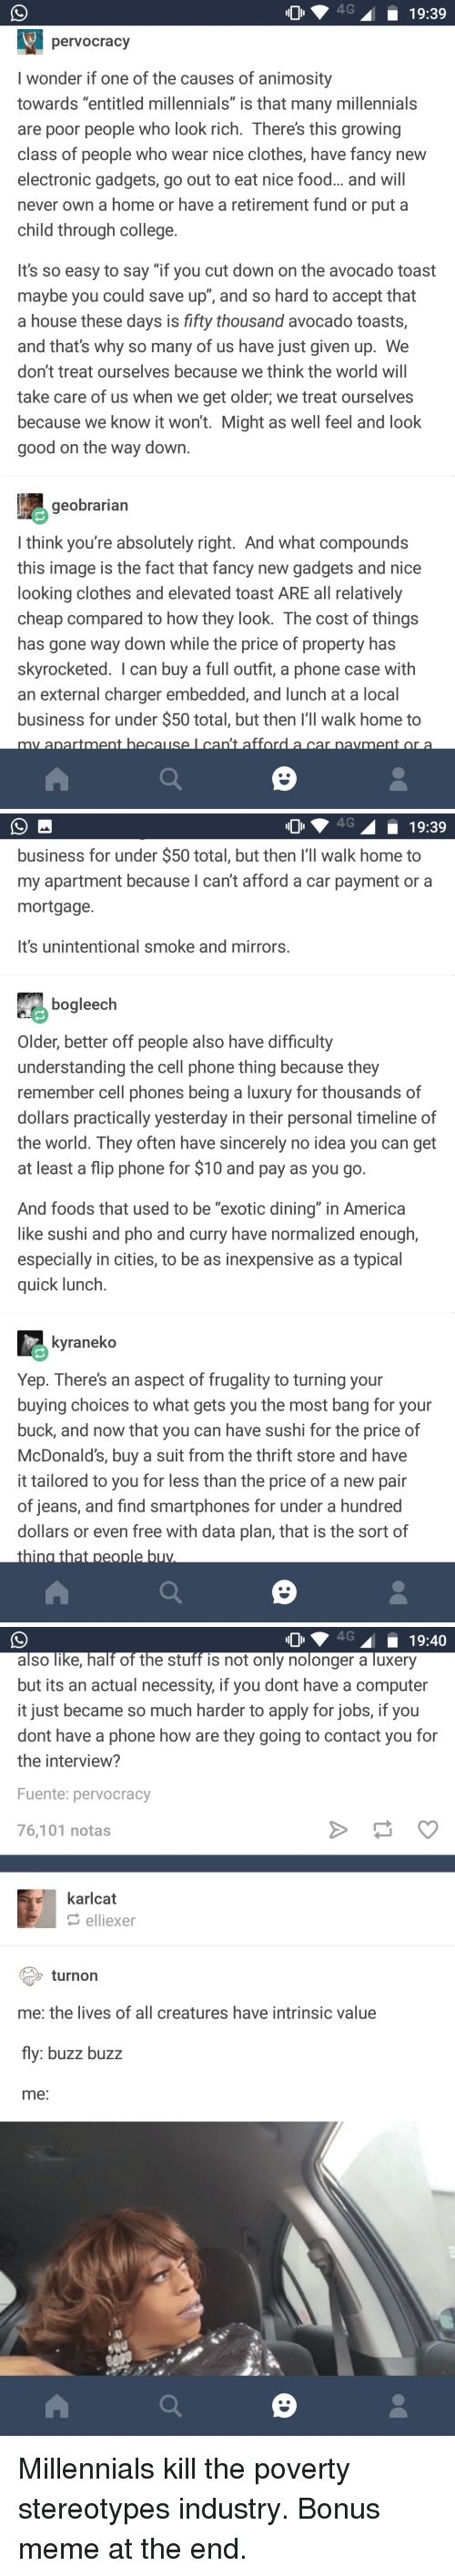 "America, Clothes, and College: O4G19:39  pervocracy  I wonder if one of the causes of animosity  towards ""entitled millennials"" is that many millennials  are poor people who look rich. Theres this growing  class of people who wear nice clothes, have fancy new  electronic gadgets, go out to eat nice food... and will  never own a home or have a retirement fund or put a  child through college.  It's so easy to say ""if you cut down on the avocado toast  maybe you could save up"", and so hard to accept that  a house these days is fifty thousand avocado toasts,  and thats why so many of us have just given up. We  don't treat ourselves because we think the world will  take care of us when we get older, we treat ourselves  because we know it won't. Might as well feel and look  good on the way down  geobrarian  think you're absolutely right. And what compounds  this image is the fact that fancy new gadgets and nice  looking clothes and elevated toast ARE all relatively  cheap compared to how they look. The cost of things  has gone way down while the price of property has  skyrocketed. I can buy a full outfit, a phone case with  an external charger embedded, and lunch at a local  business for under $50 total, but then I'll walk home to   4619:39  business for under $50 total, but then I'll walk home to  my apartment because I can't afford a car payment or a  mortgage.  It's unintentional smoke and mirrors  bogleech  Older, better off people also have difficulty  understanding the cell phone thing because they  remember cell phones being a luxury for thousands of  dollars practically yesterday in their personal timeline of  the world. They often have sincerely no idea you can get  at least a flip phone for $10 and pay as you go  And foods that used to be ""exotic dining"" in America  like sushi and pho and curry have normalized enough,  especially in cities, to be as inexpensive as a typical  quick Tunch  kyraneko  Yep. There's an aspect of frugality to turning your  buying choices to what gets you the most bang for your  buck, and now that you can have sushi for the price of  McDonald's, buy a suit from the thrift store and have  it tailored to you for less than the price of a new pain  of jeans, and find smartphones for under a hundred  dollars or even free with data plan, that is the sort of   also like, half of the stuff is not only nolonger a luxery  but its an actual necessity, if you dont have a computer  it just became so much harder to apply for jobs, if you  dont have a phone how are they going to contact you for  the interview?  Fuente: pervocracy  76,101 notas  karlcat  elliexer  turnon  me: the lives of all creatures have intrinsic value  fly: buzz buzz  me: Millennials kill the poverty stereotypes industry. Bonus meme at the end."